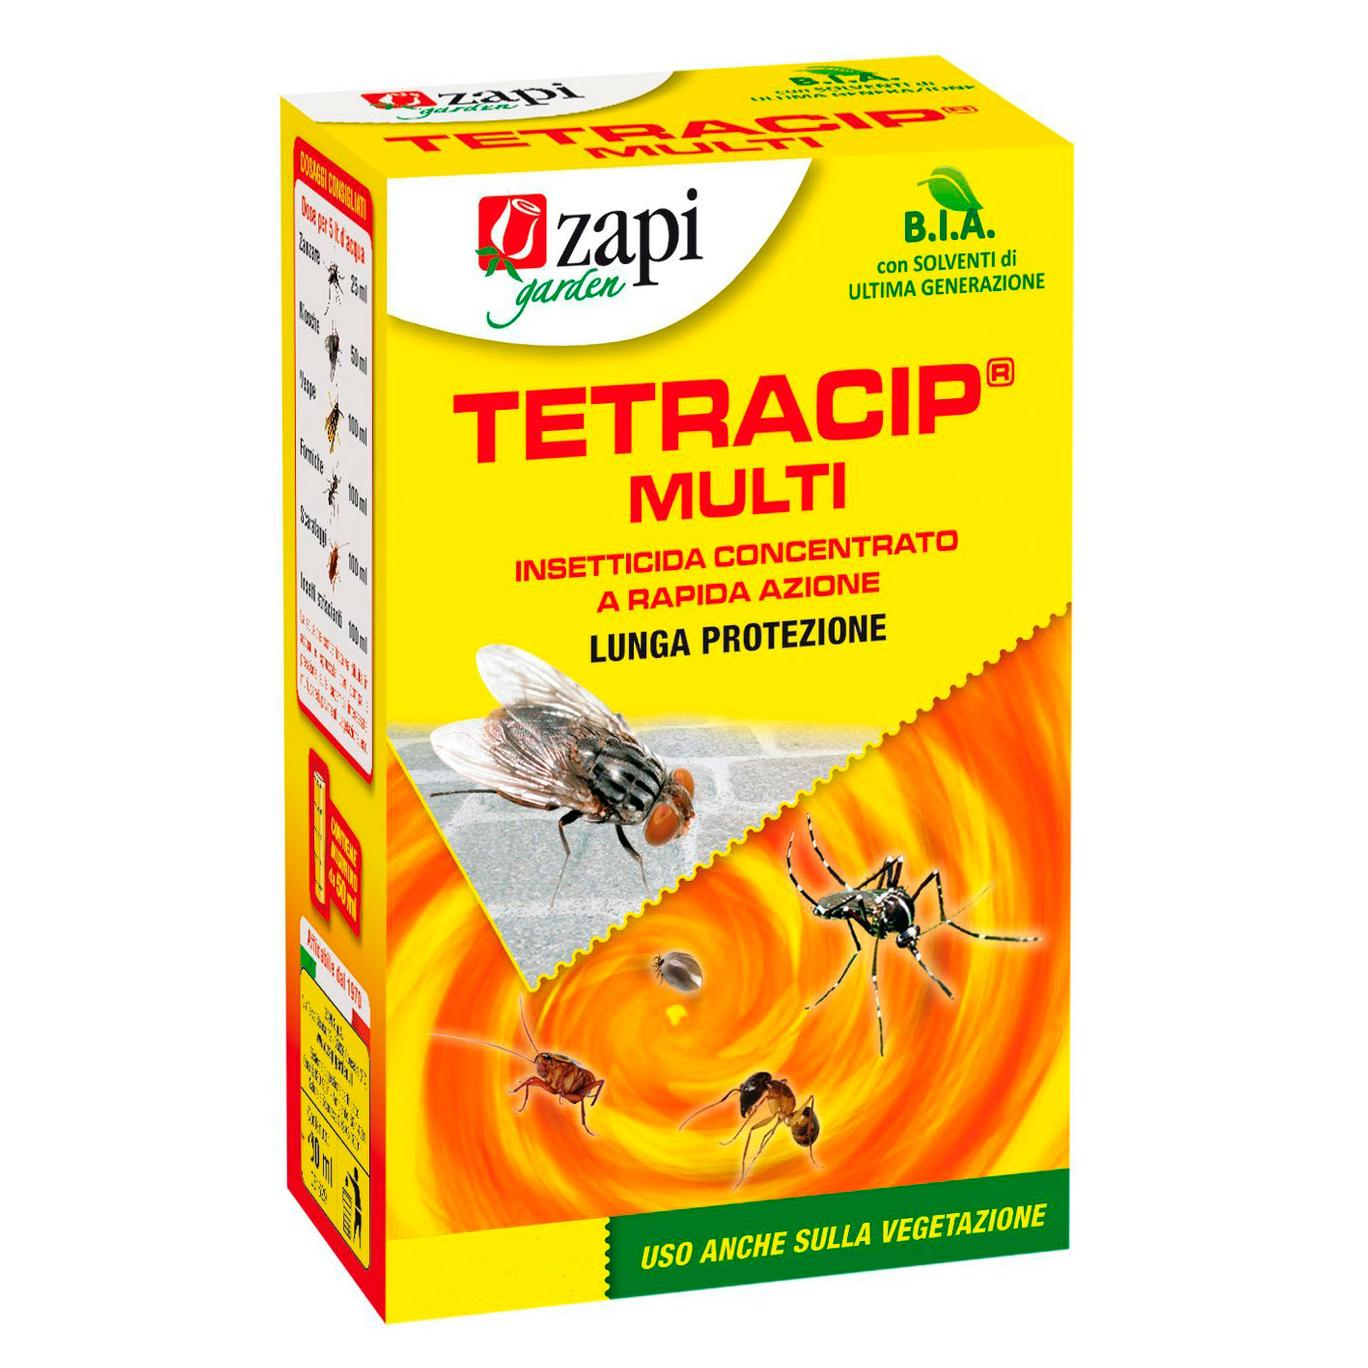 Tetracip Multi 250ml Insetticida MULTINSETTO concentrato a RAPIDA AZIONE